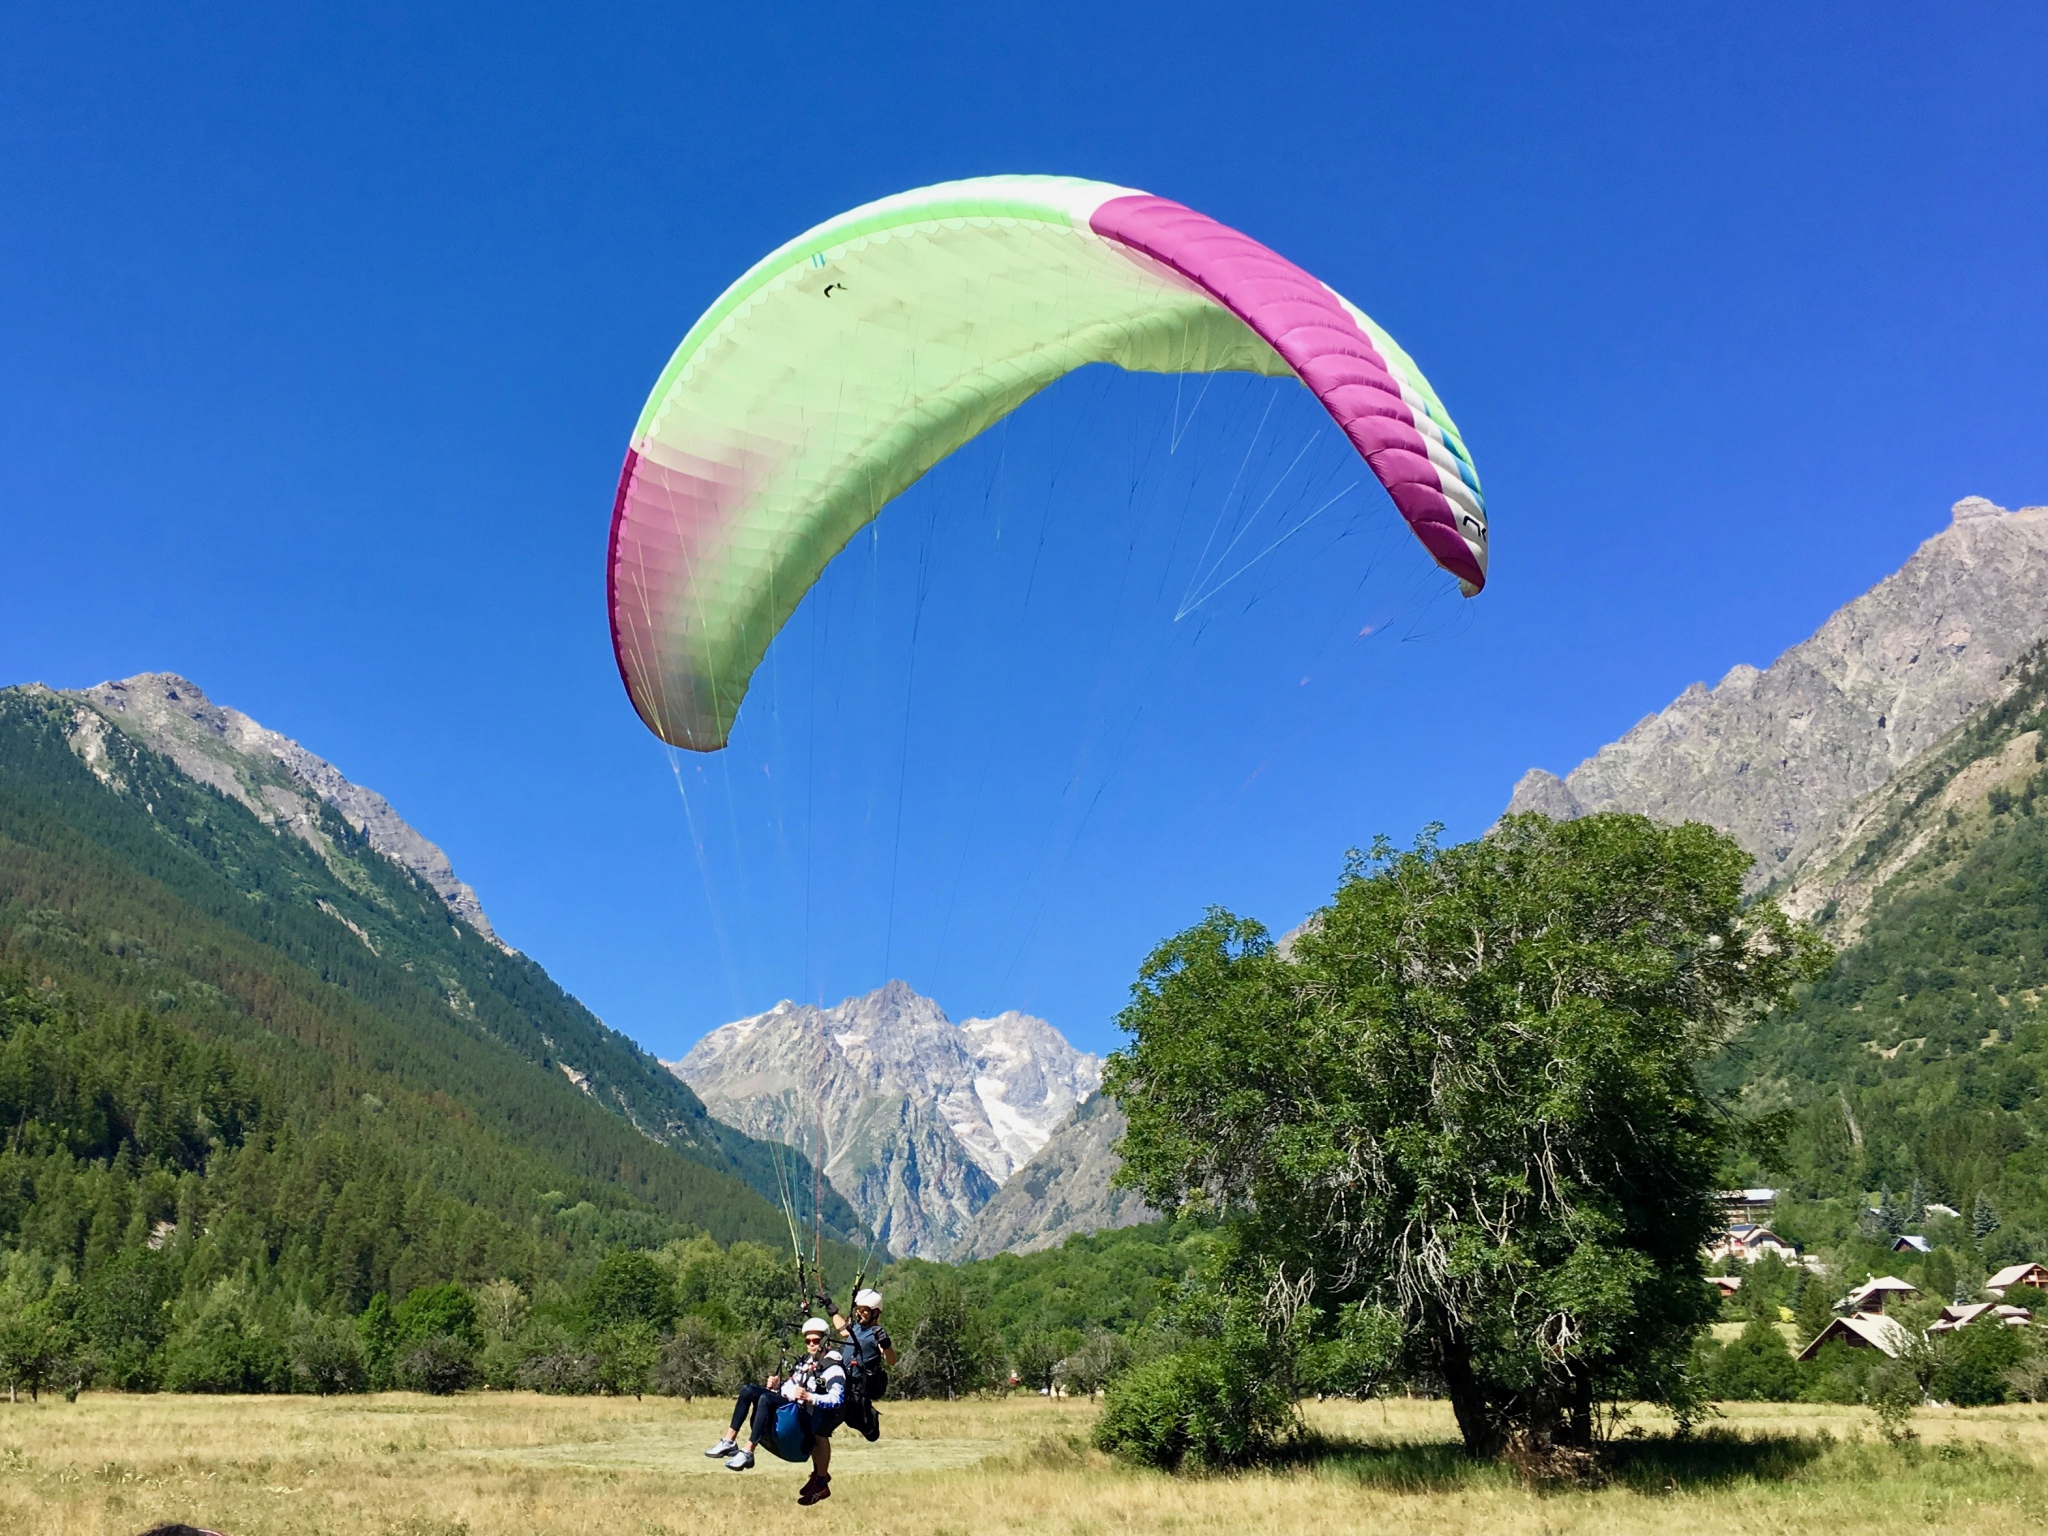 Tandem paraglider landing in field next to Alpbase